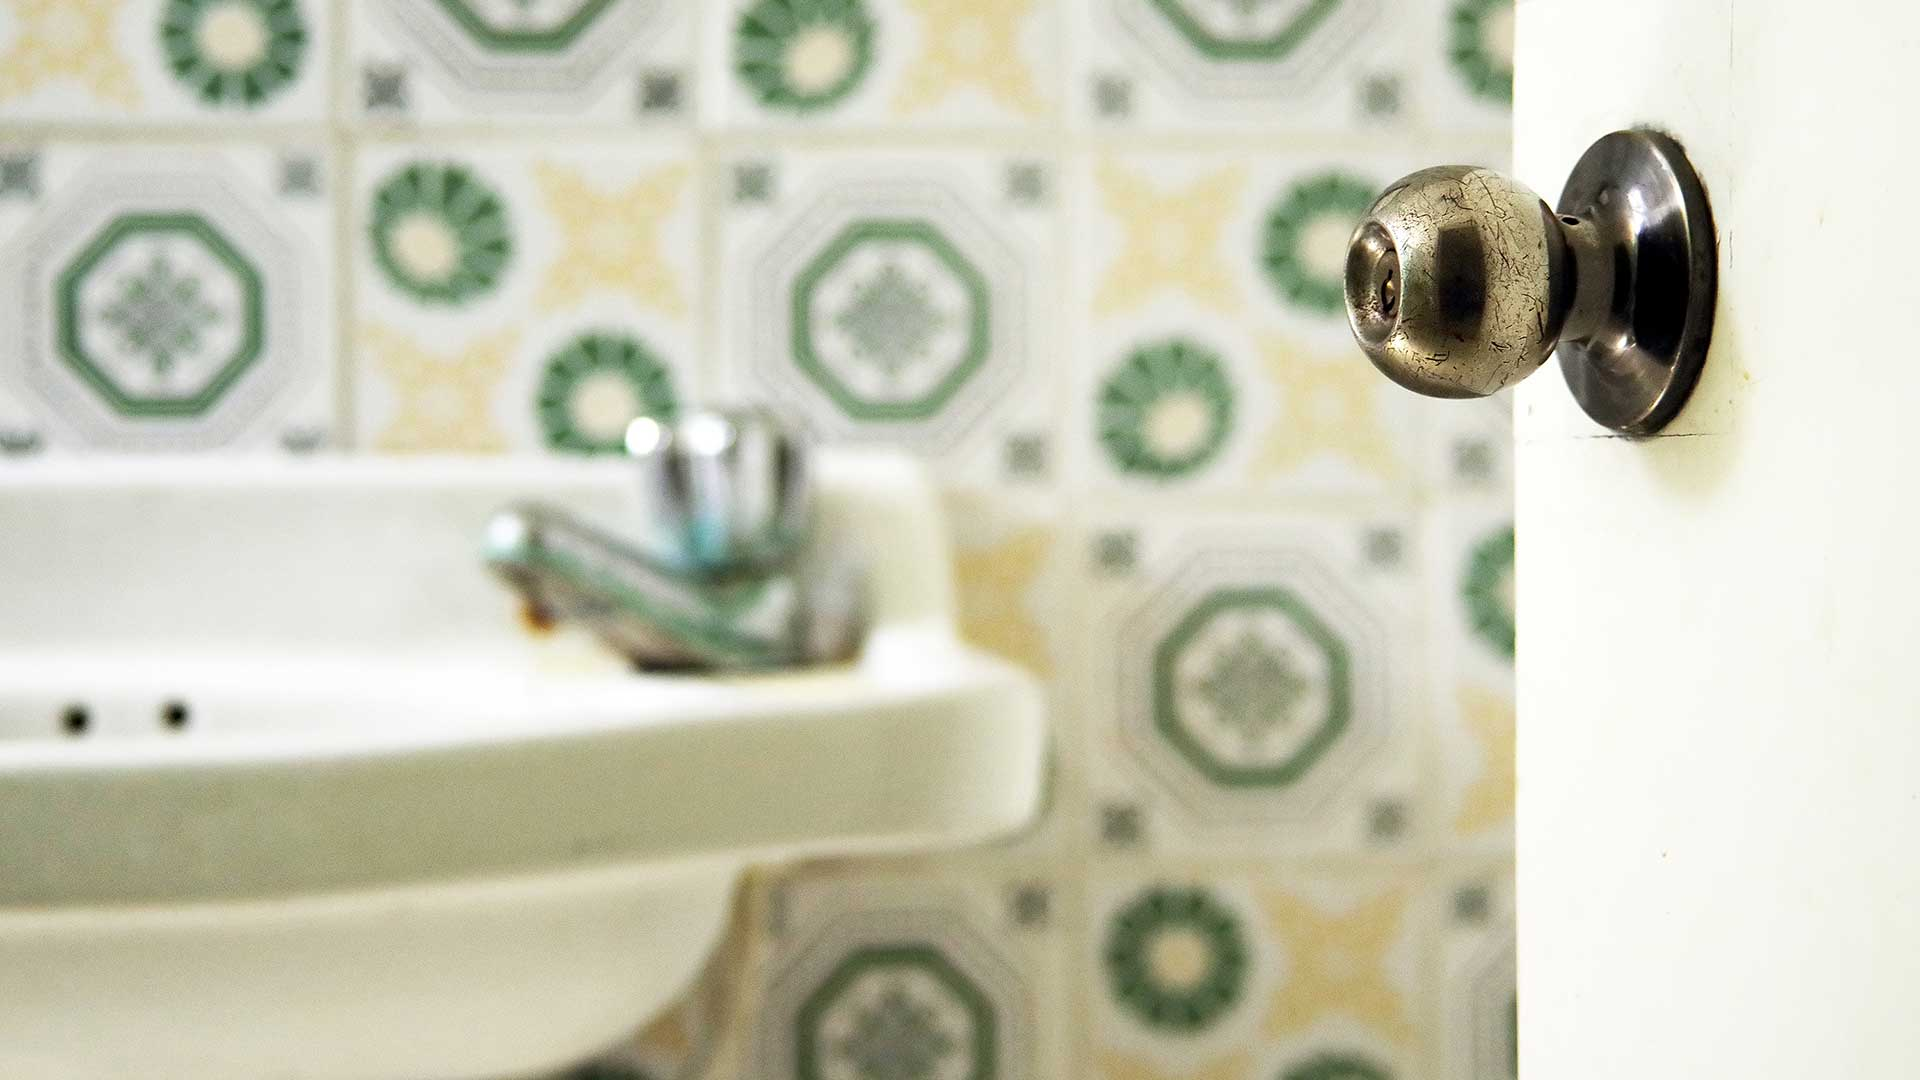 Signs That Your Bathroom Needs a Remodel